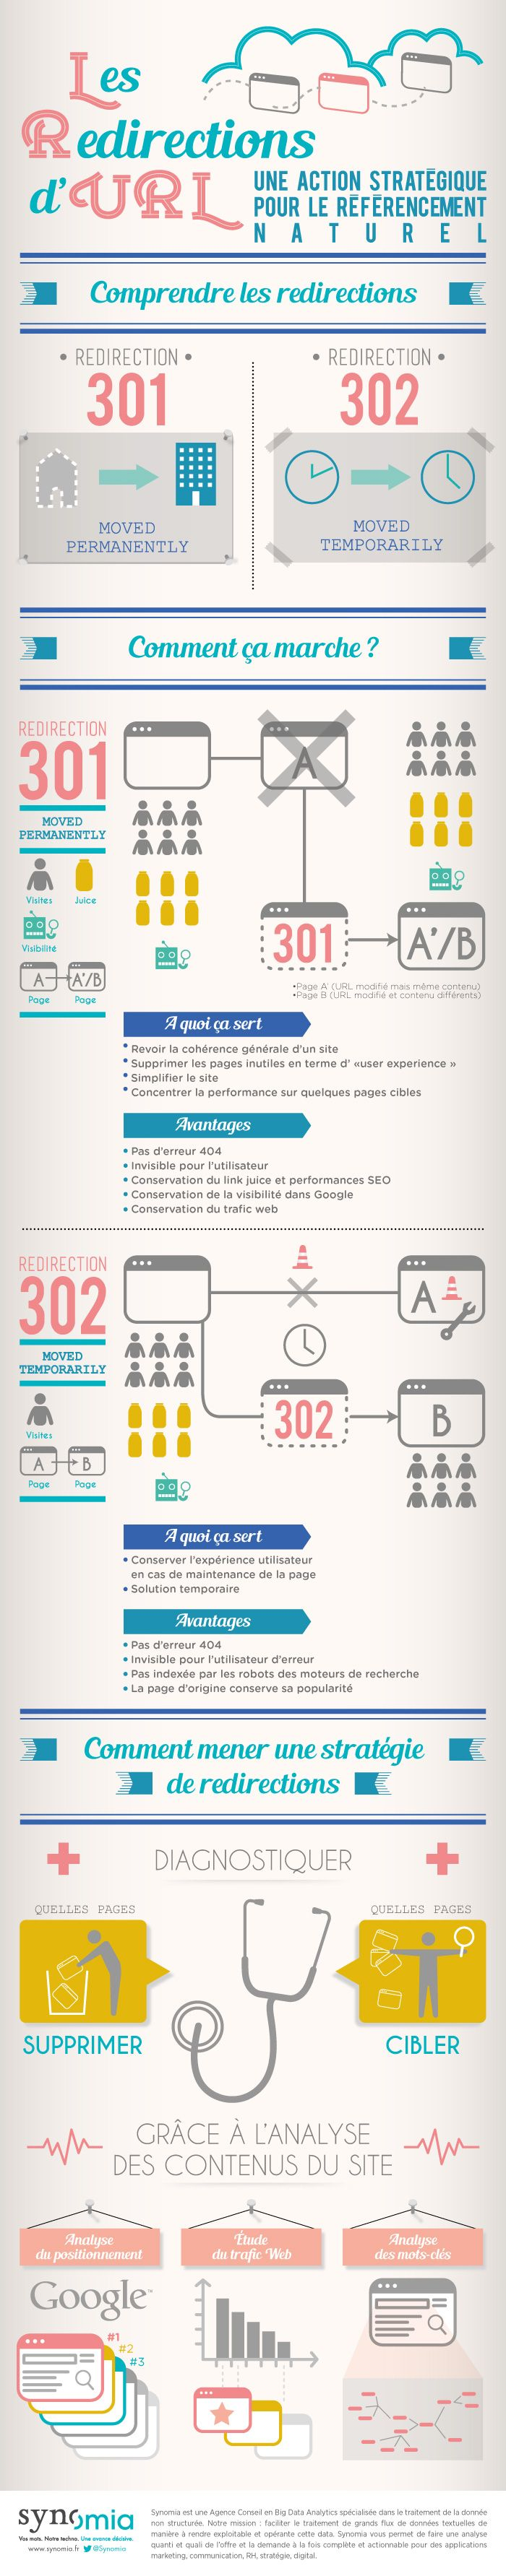 Infographie : SEO et redir ections 301, 302